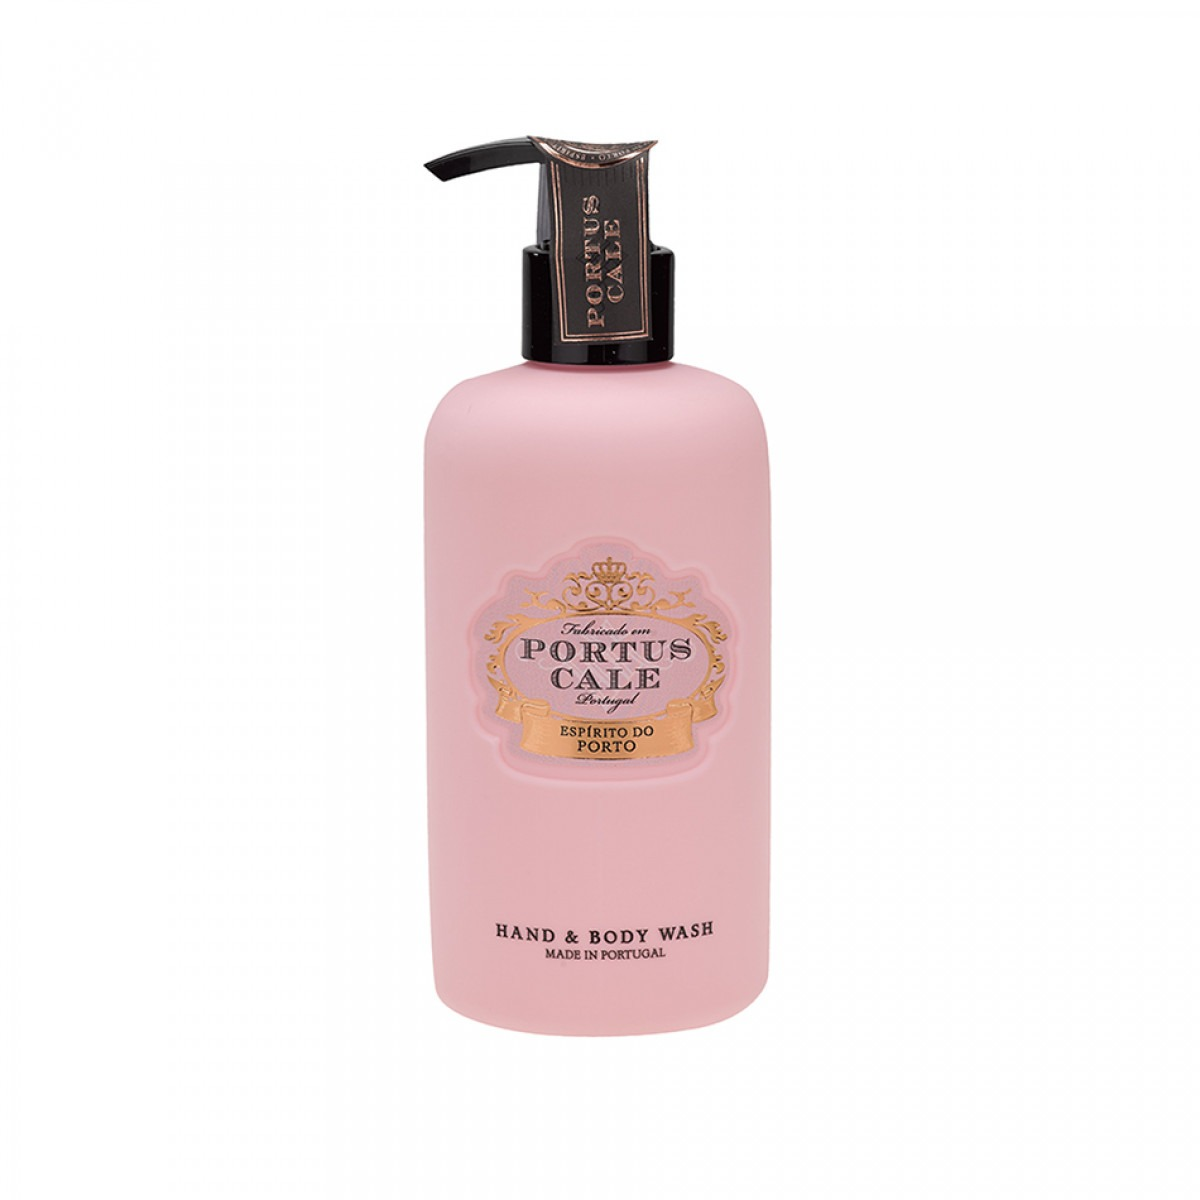 Portus Cale Rose Blush Hand & Body Wash